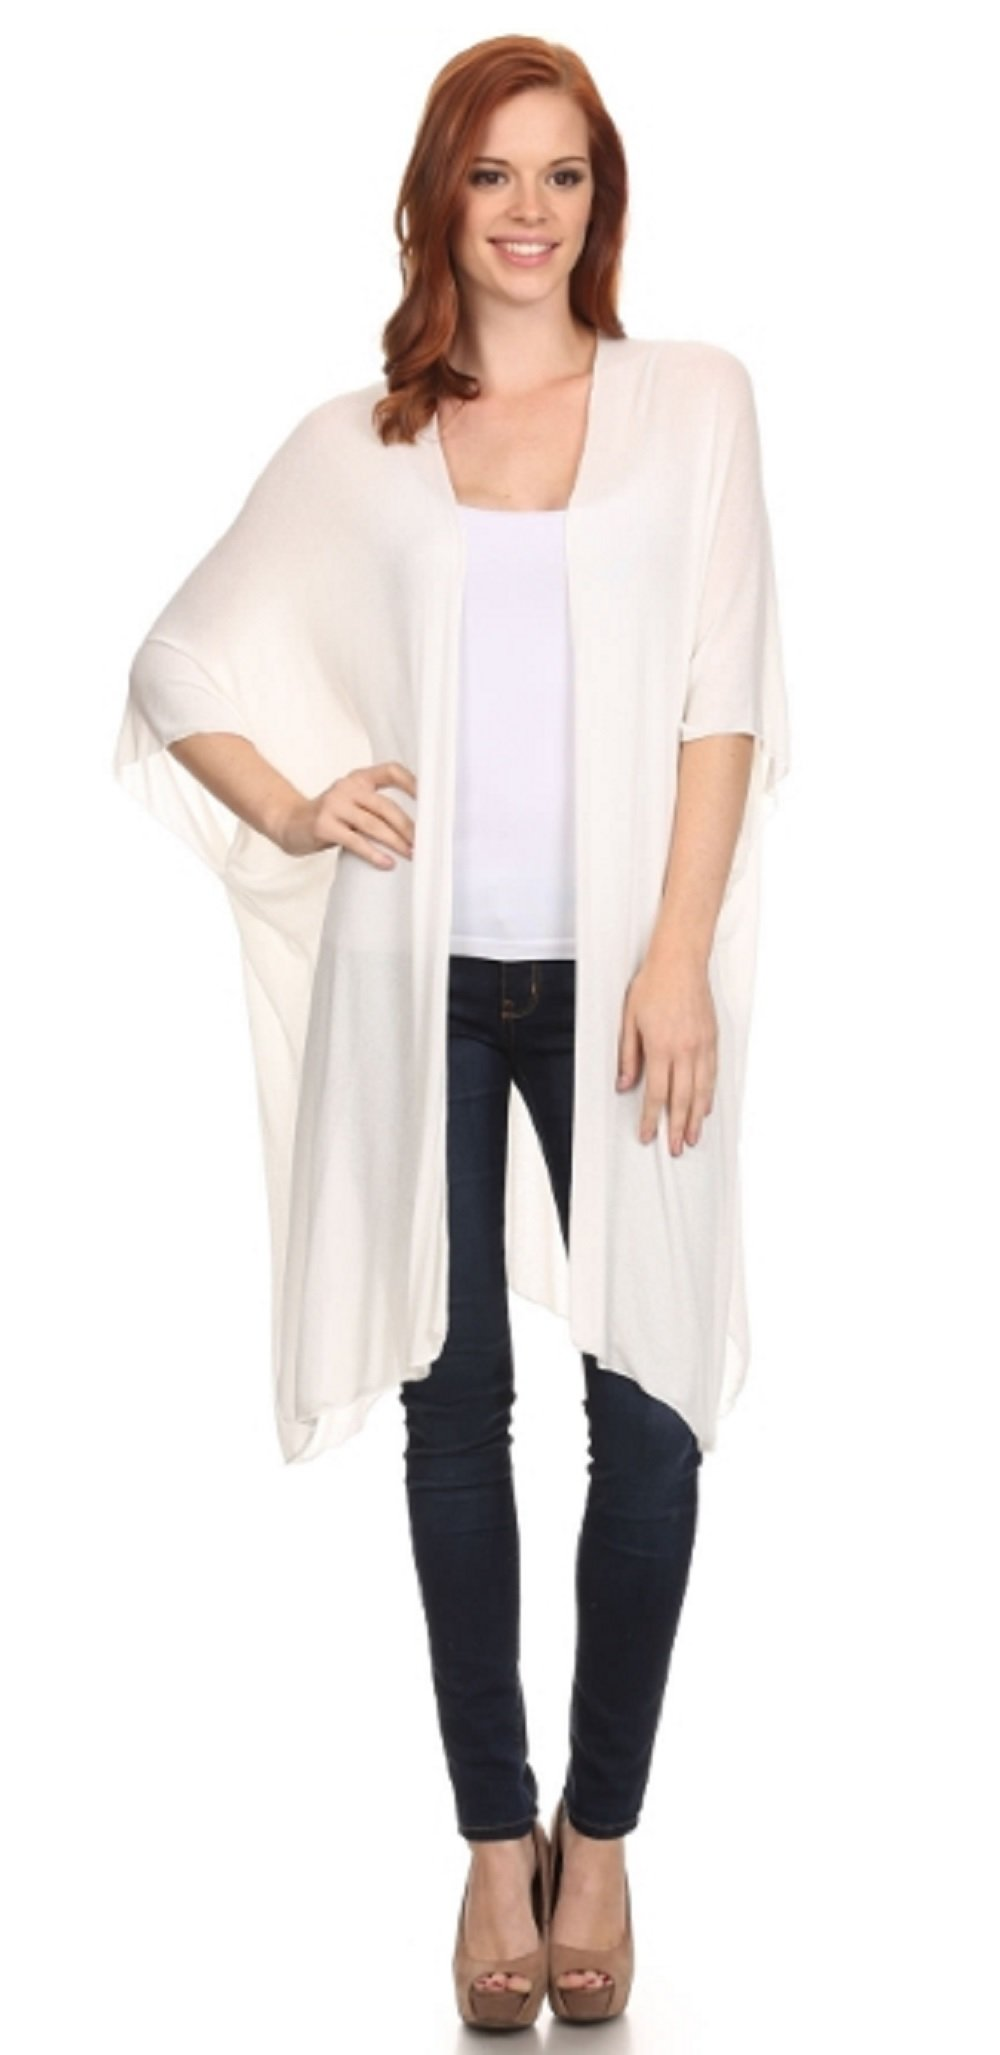 Love My Seamless Womens Ladies Fashion Long Shrug Open Cardigan Duster Cover up (Medium, Ivory)